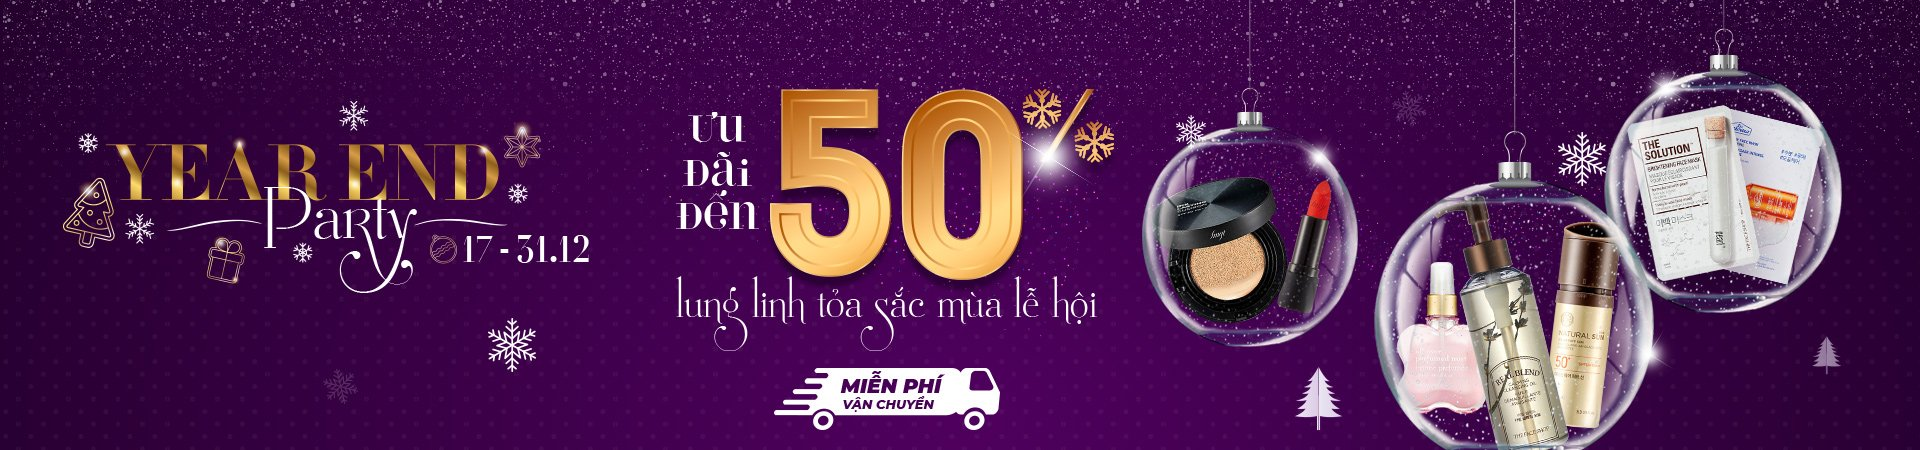 YEAR END PARTY - NHÓM GIẢM 30%